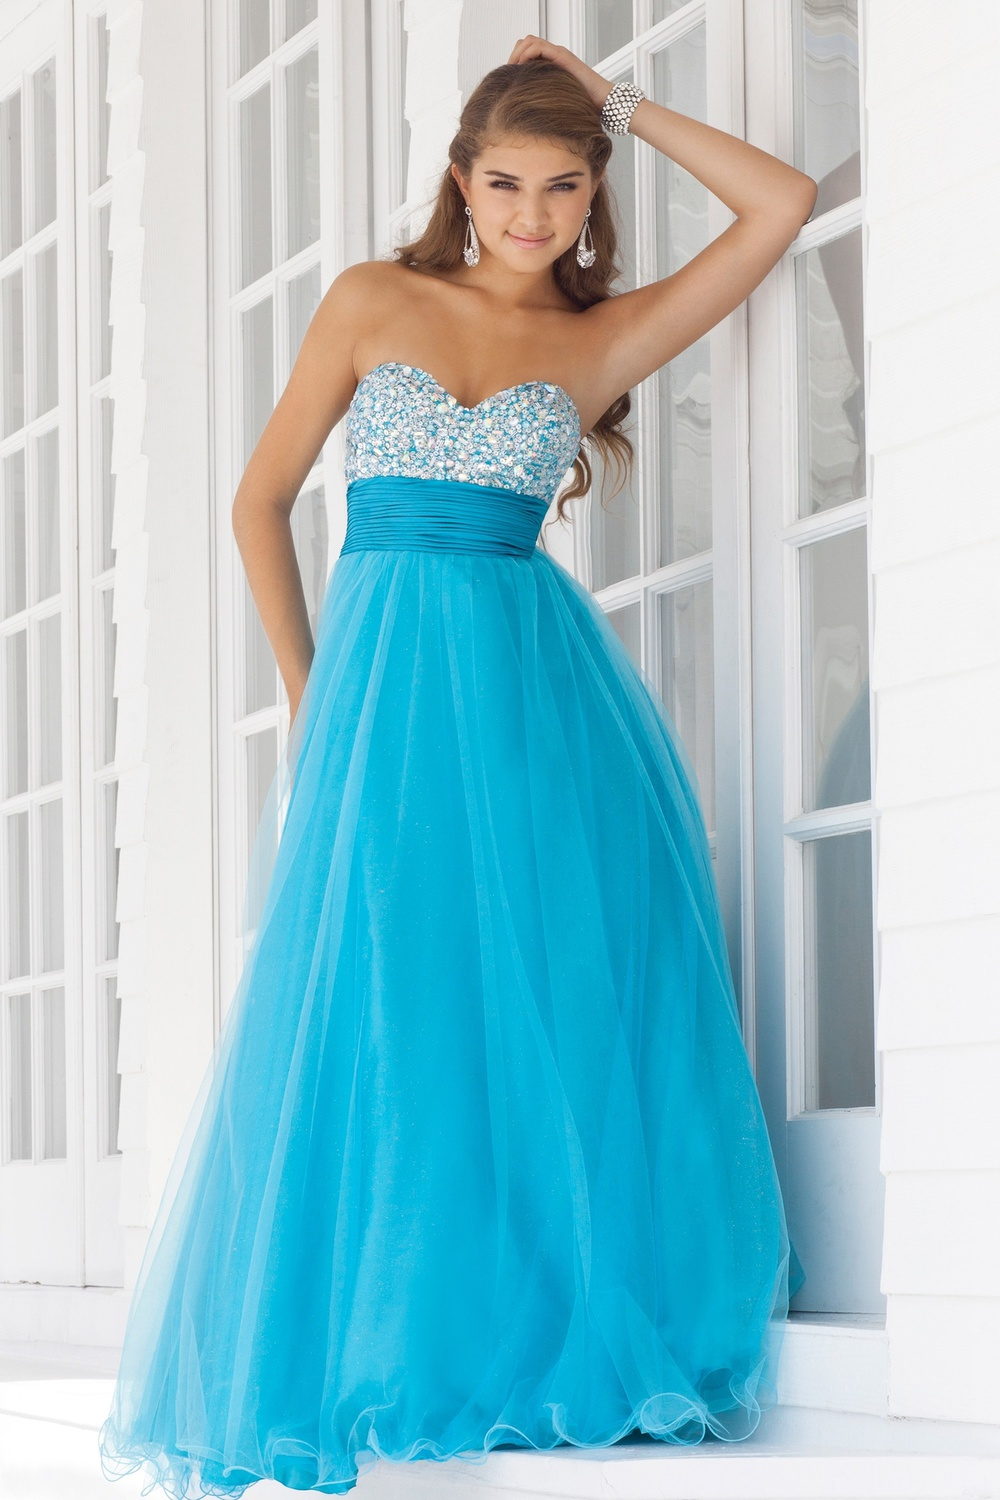 2012 Absorbing Dreamlike Fancy Sweetheart Neckline Ruffle Beads Working Blue Organza Satin Floor Length Prom Dress [PD-4375]